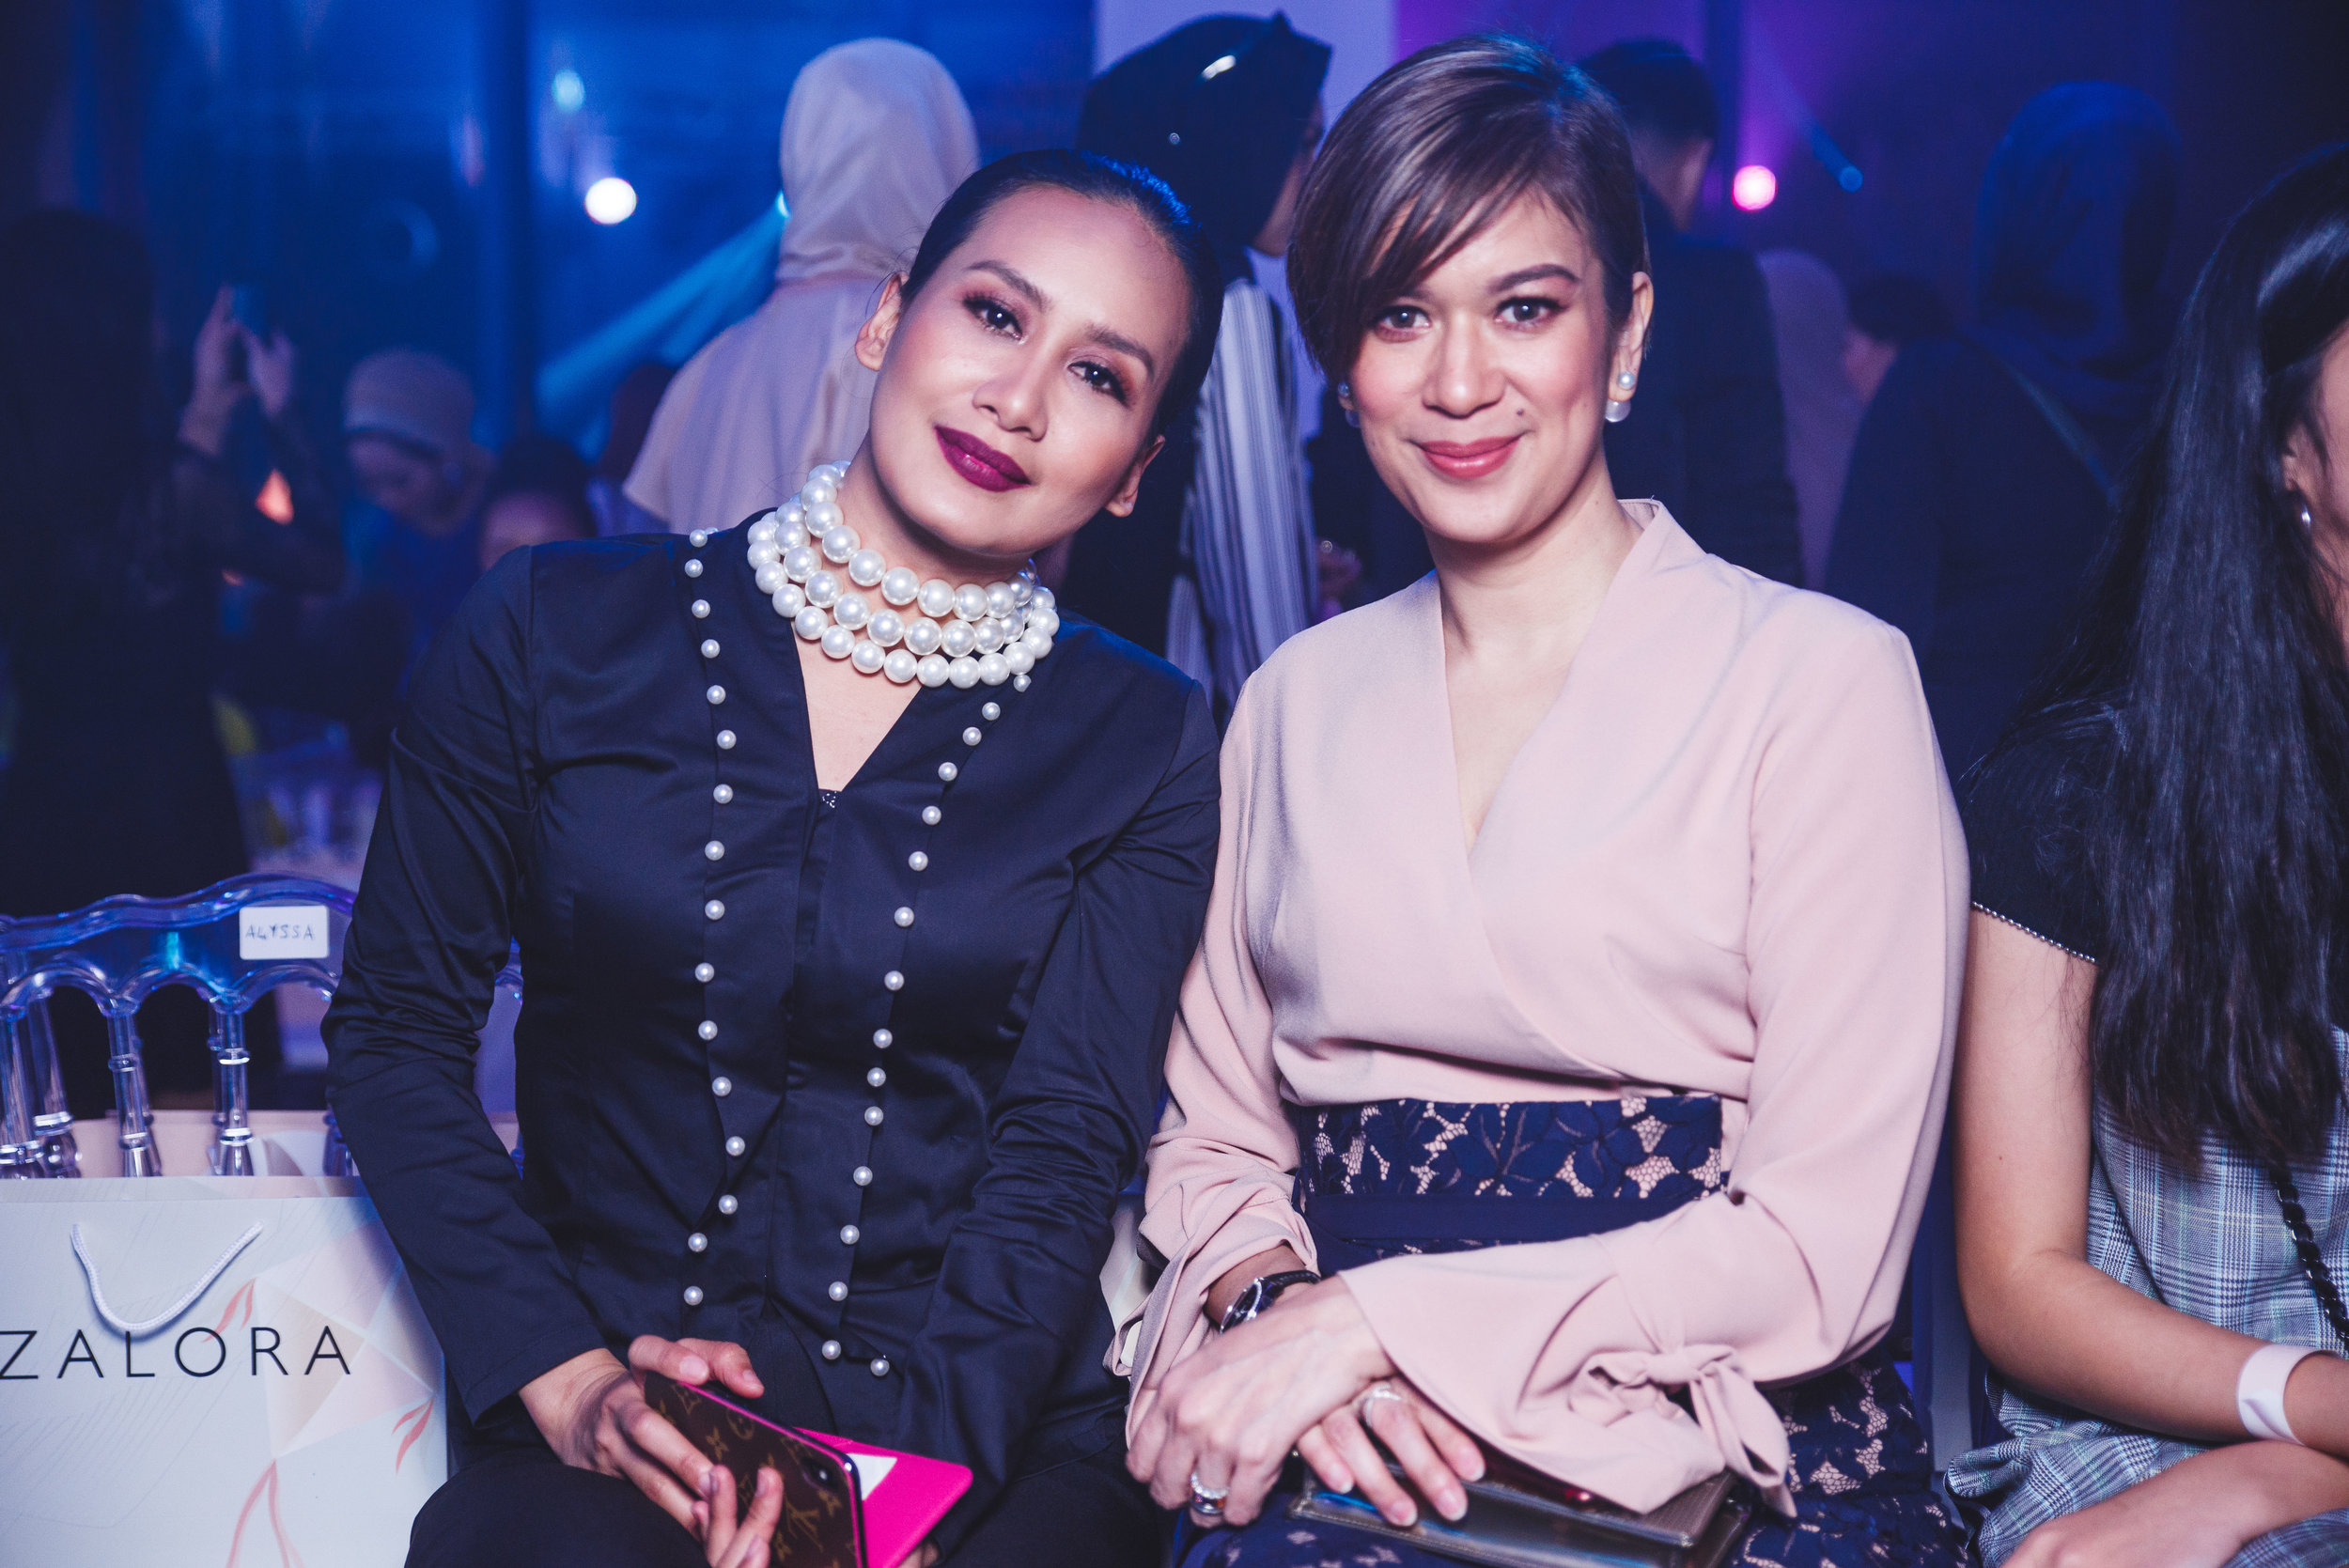 Zalora Raya 2018  - DDY_9205 - Photo by Saufi Nadzri.jpg